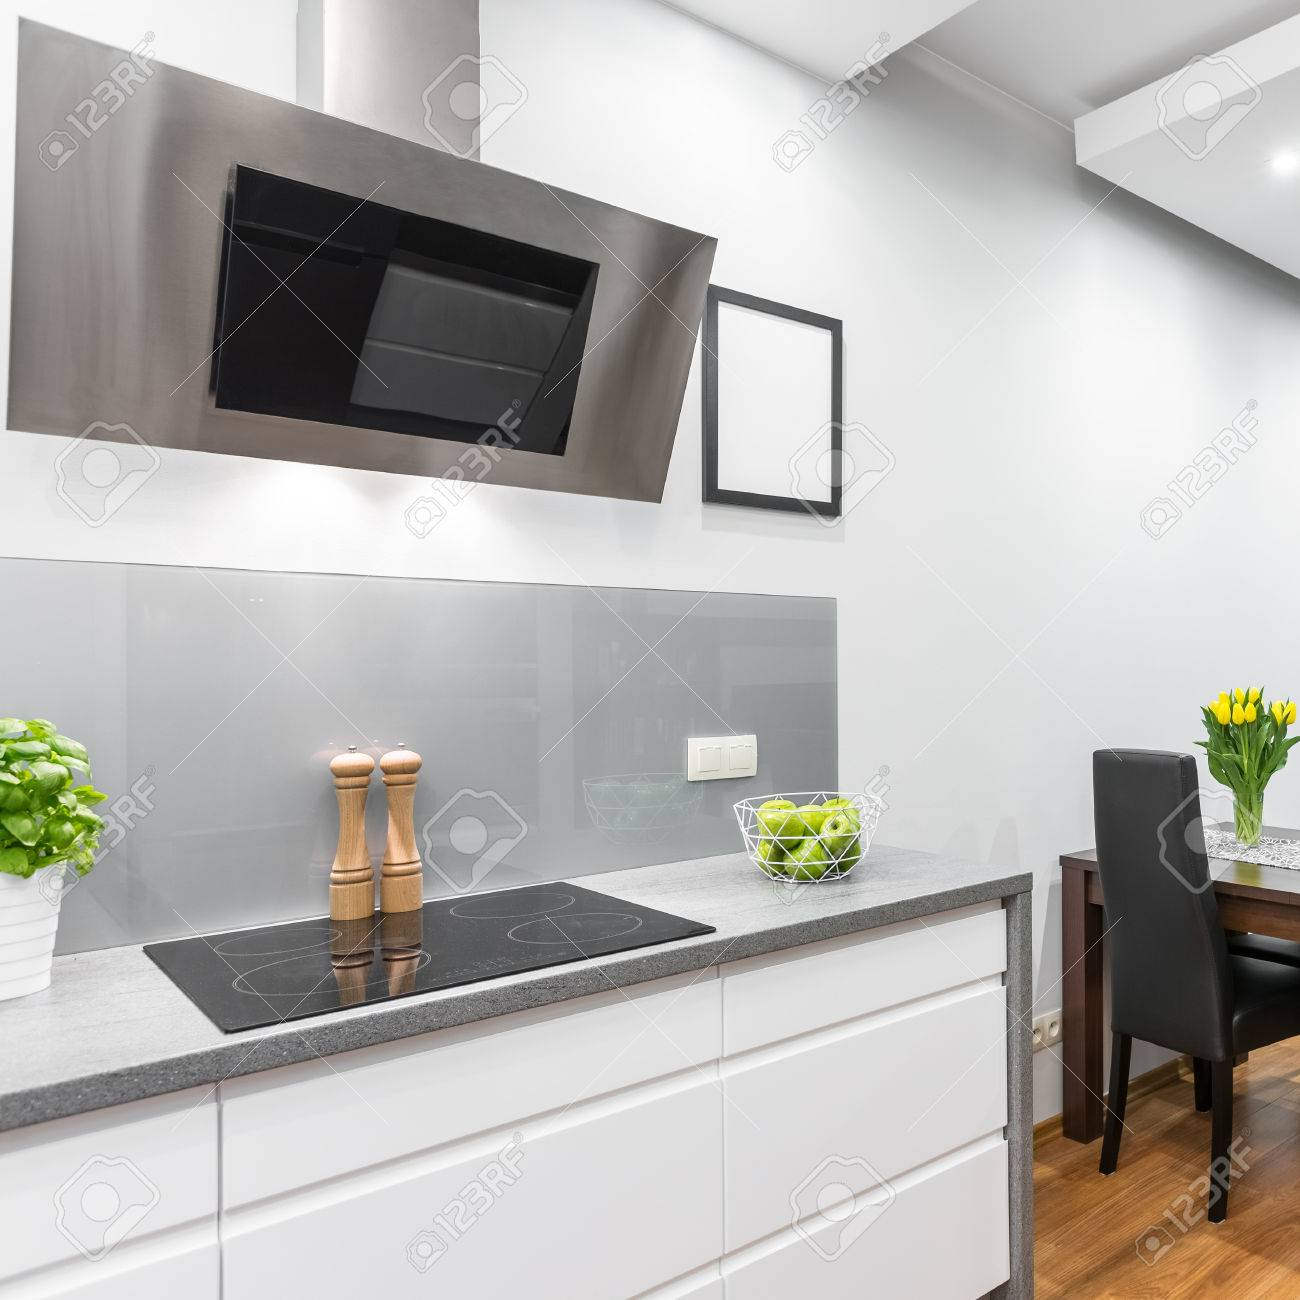 White Kitchen With Induction Hob And Exhaust Hood, Open To A.. Stock ...